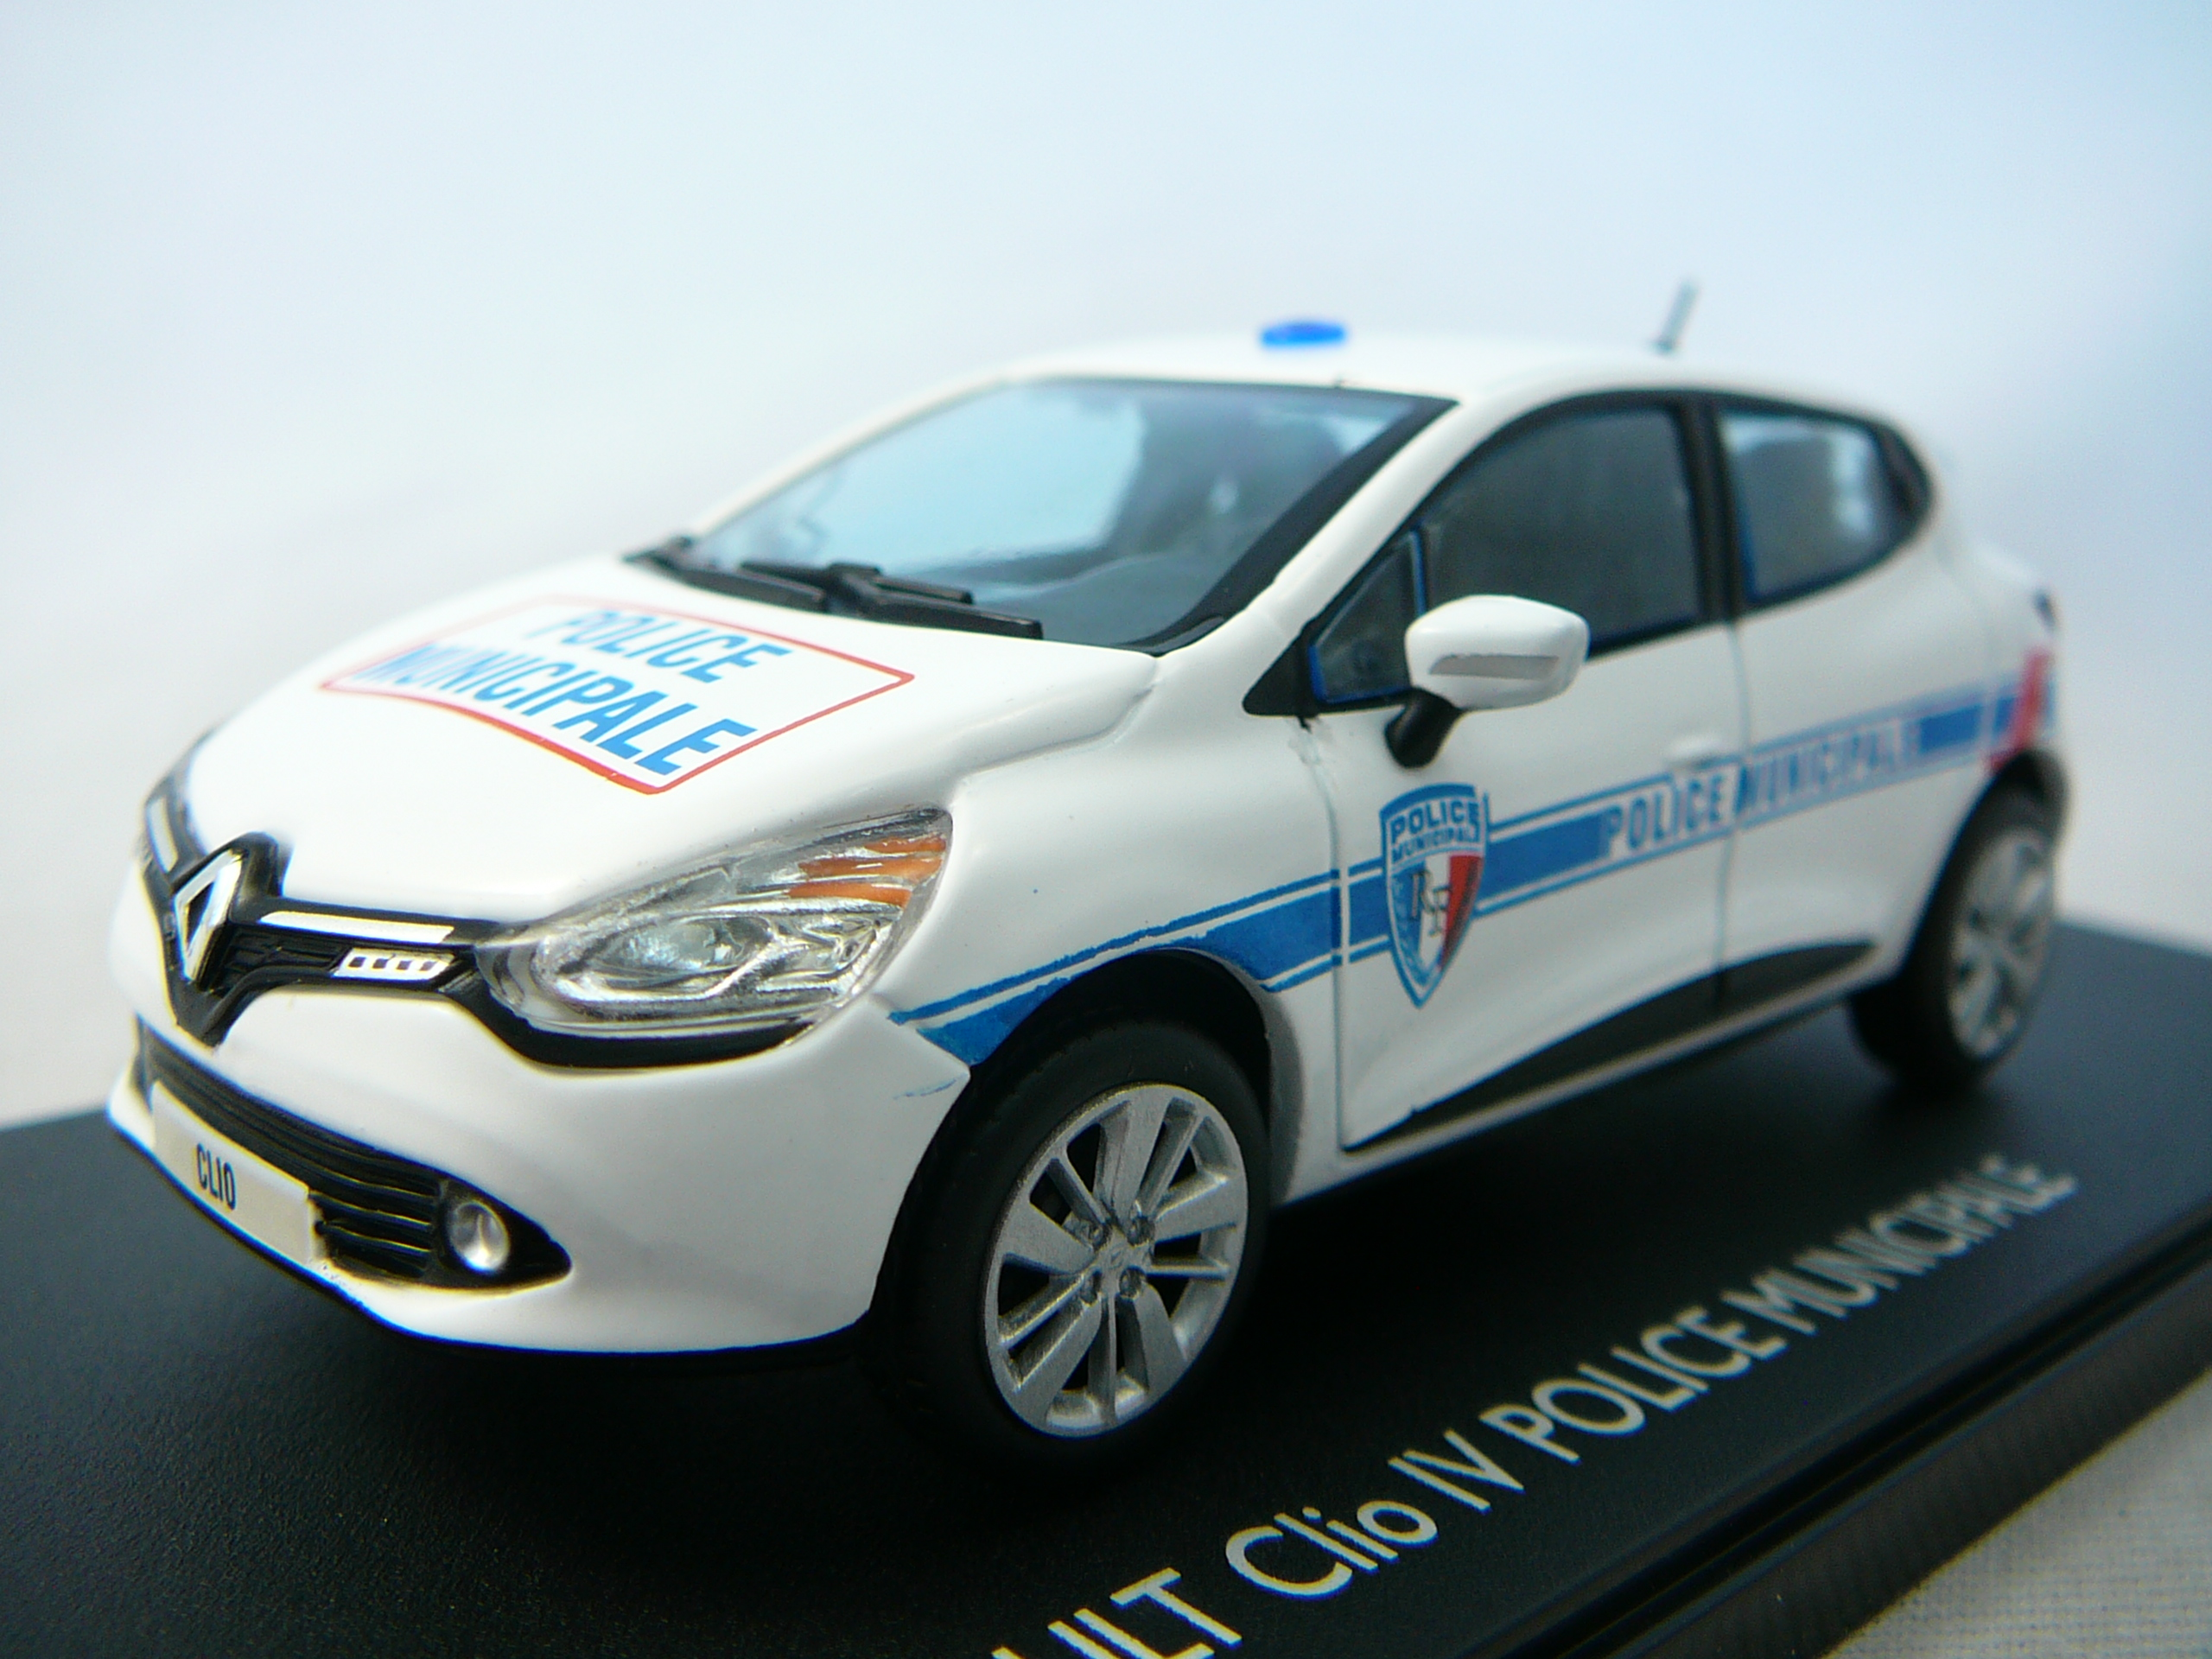 Renault Clio Iv Police Municipale Miniature 143 Eligor Xml 251 288 6463 further Brands Know Thom Browne besides Mercedes Benz CLS besides MercedesBenz600SWB as well 1938 Mercedes Benz G4. on mercedes benz signature